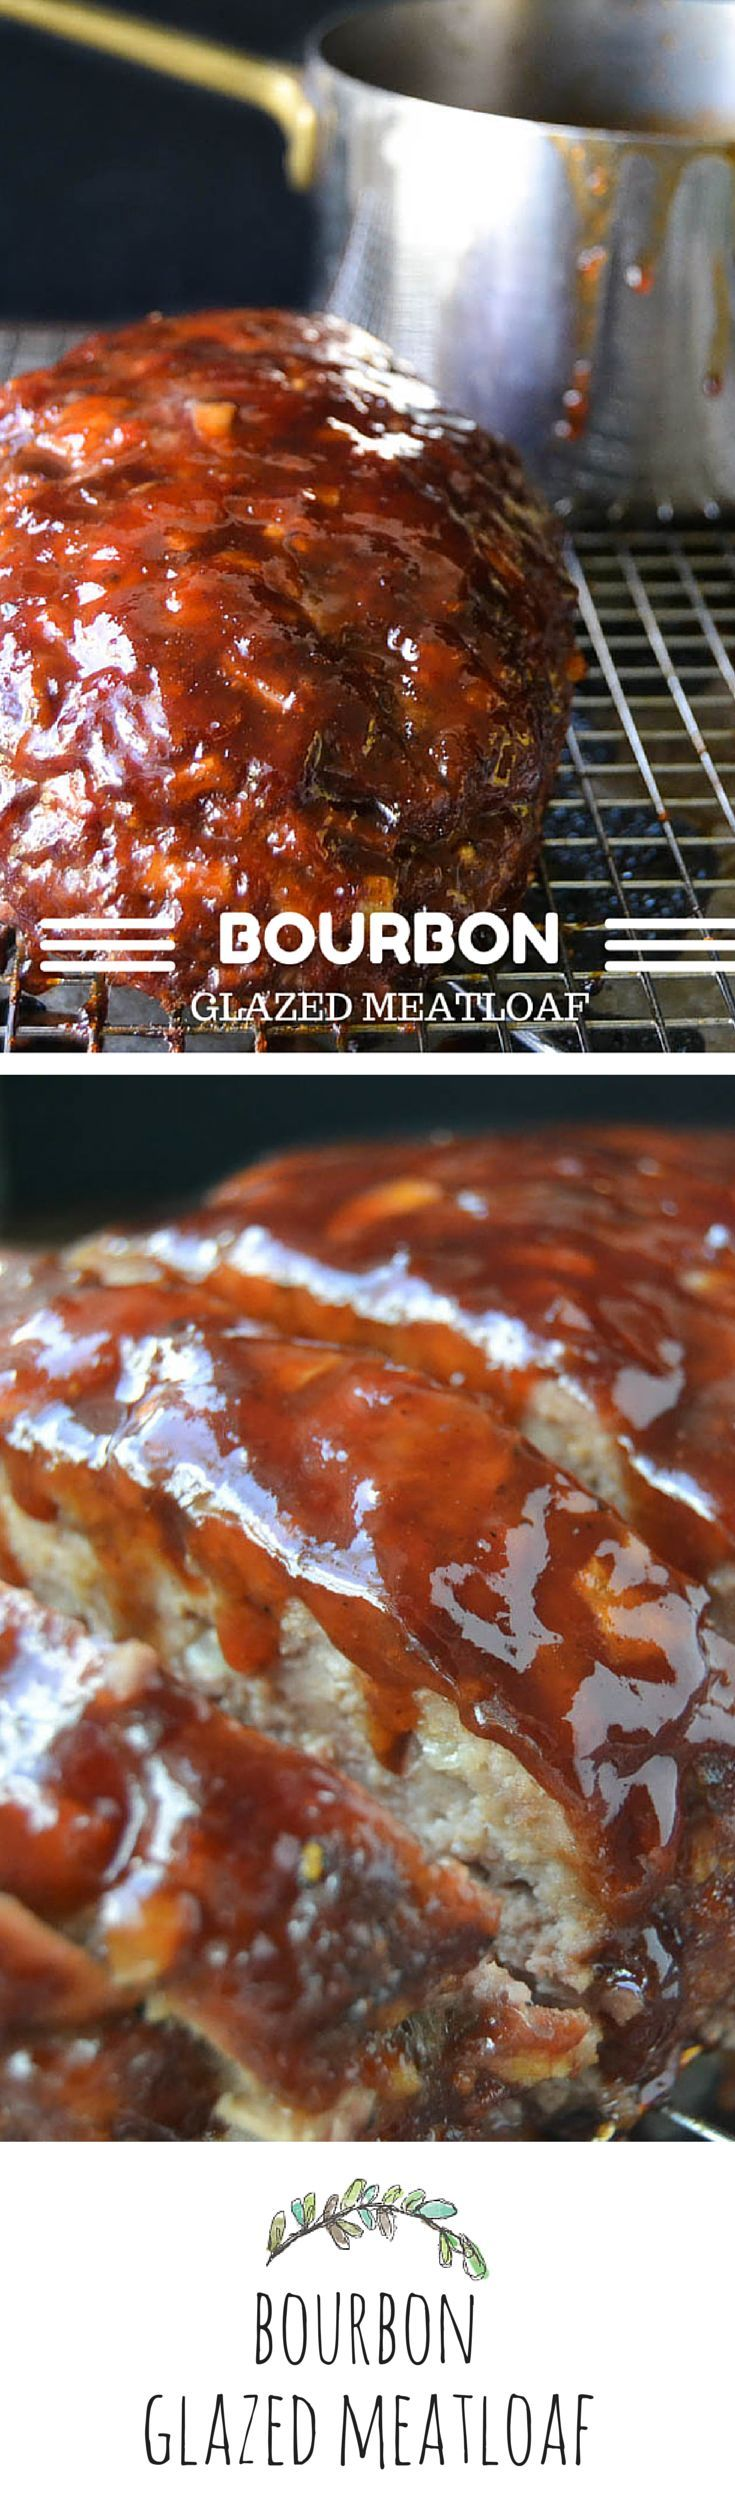 Bourbon Glazed Meatloaf: this is seriously good, sauce is awesome!, used ground chuck/ground pork mixture for meatloaf, red raspberry jam in sauce. Will make again. Made 3/8/15